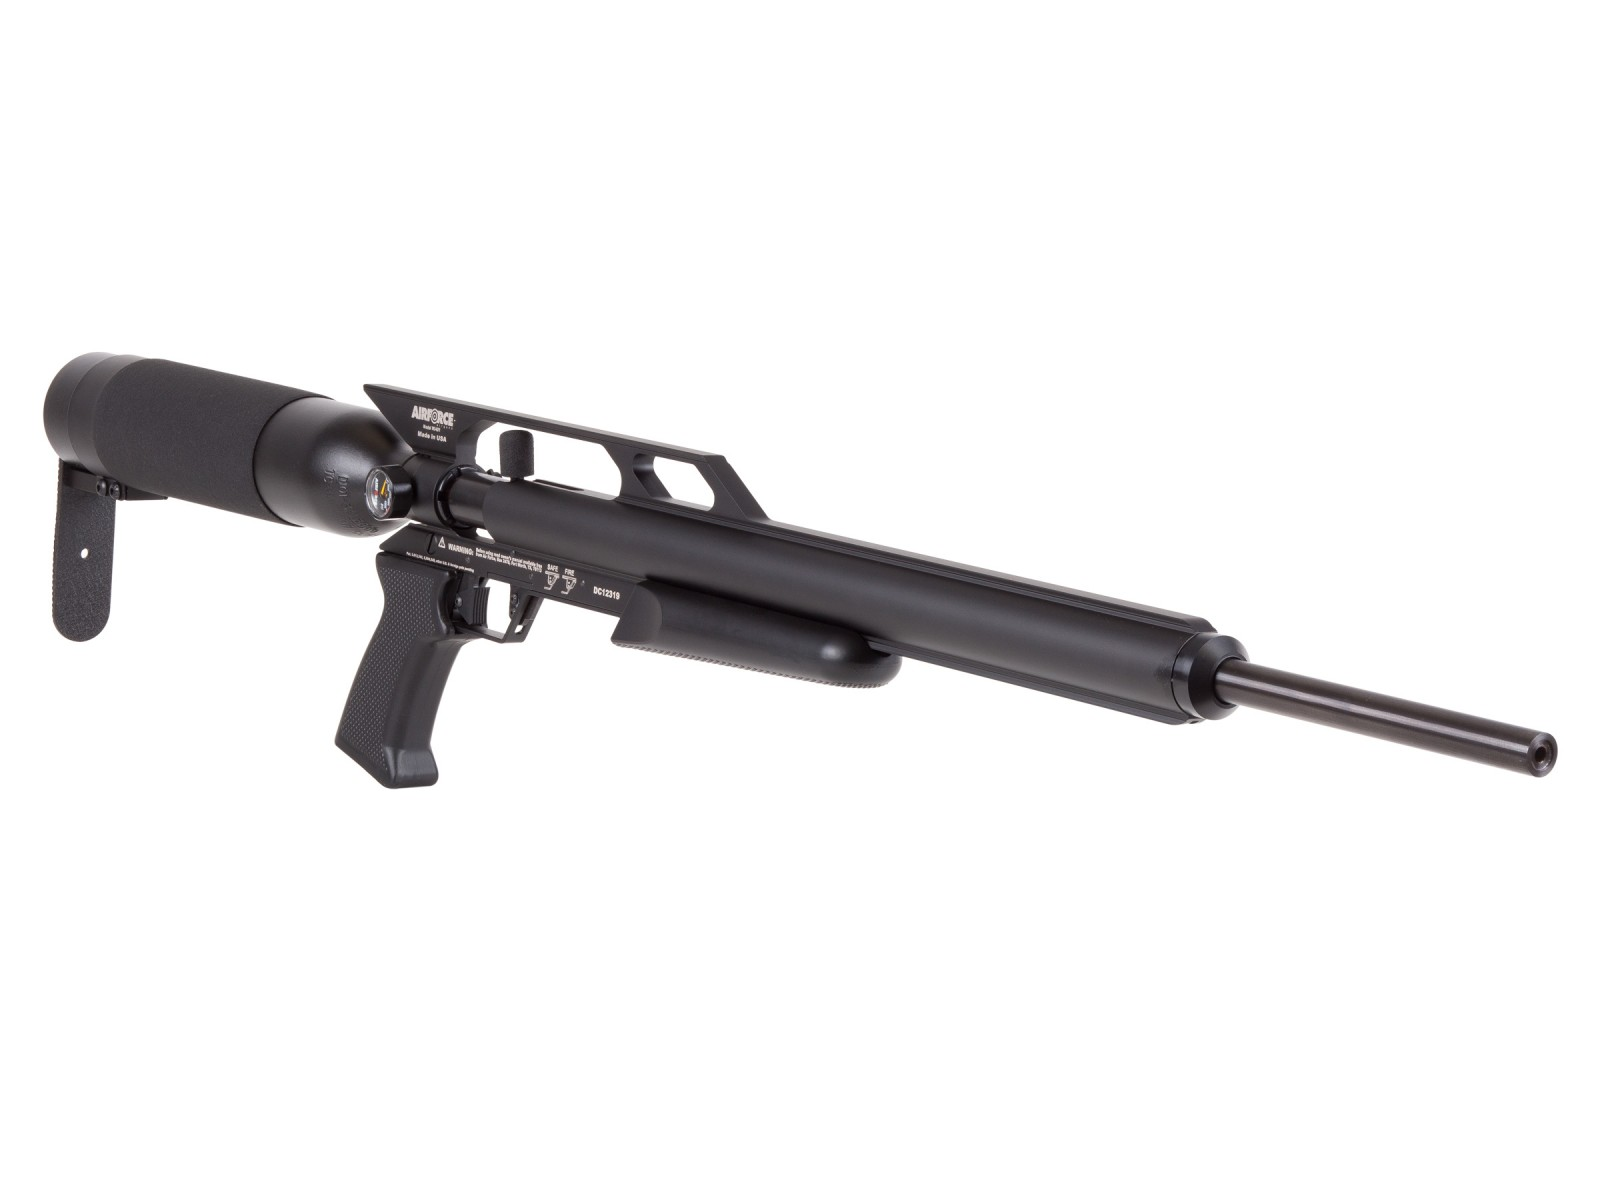 AirForce Condor PCP Air Rifle, Spin-Loc Tank